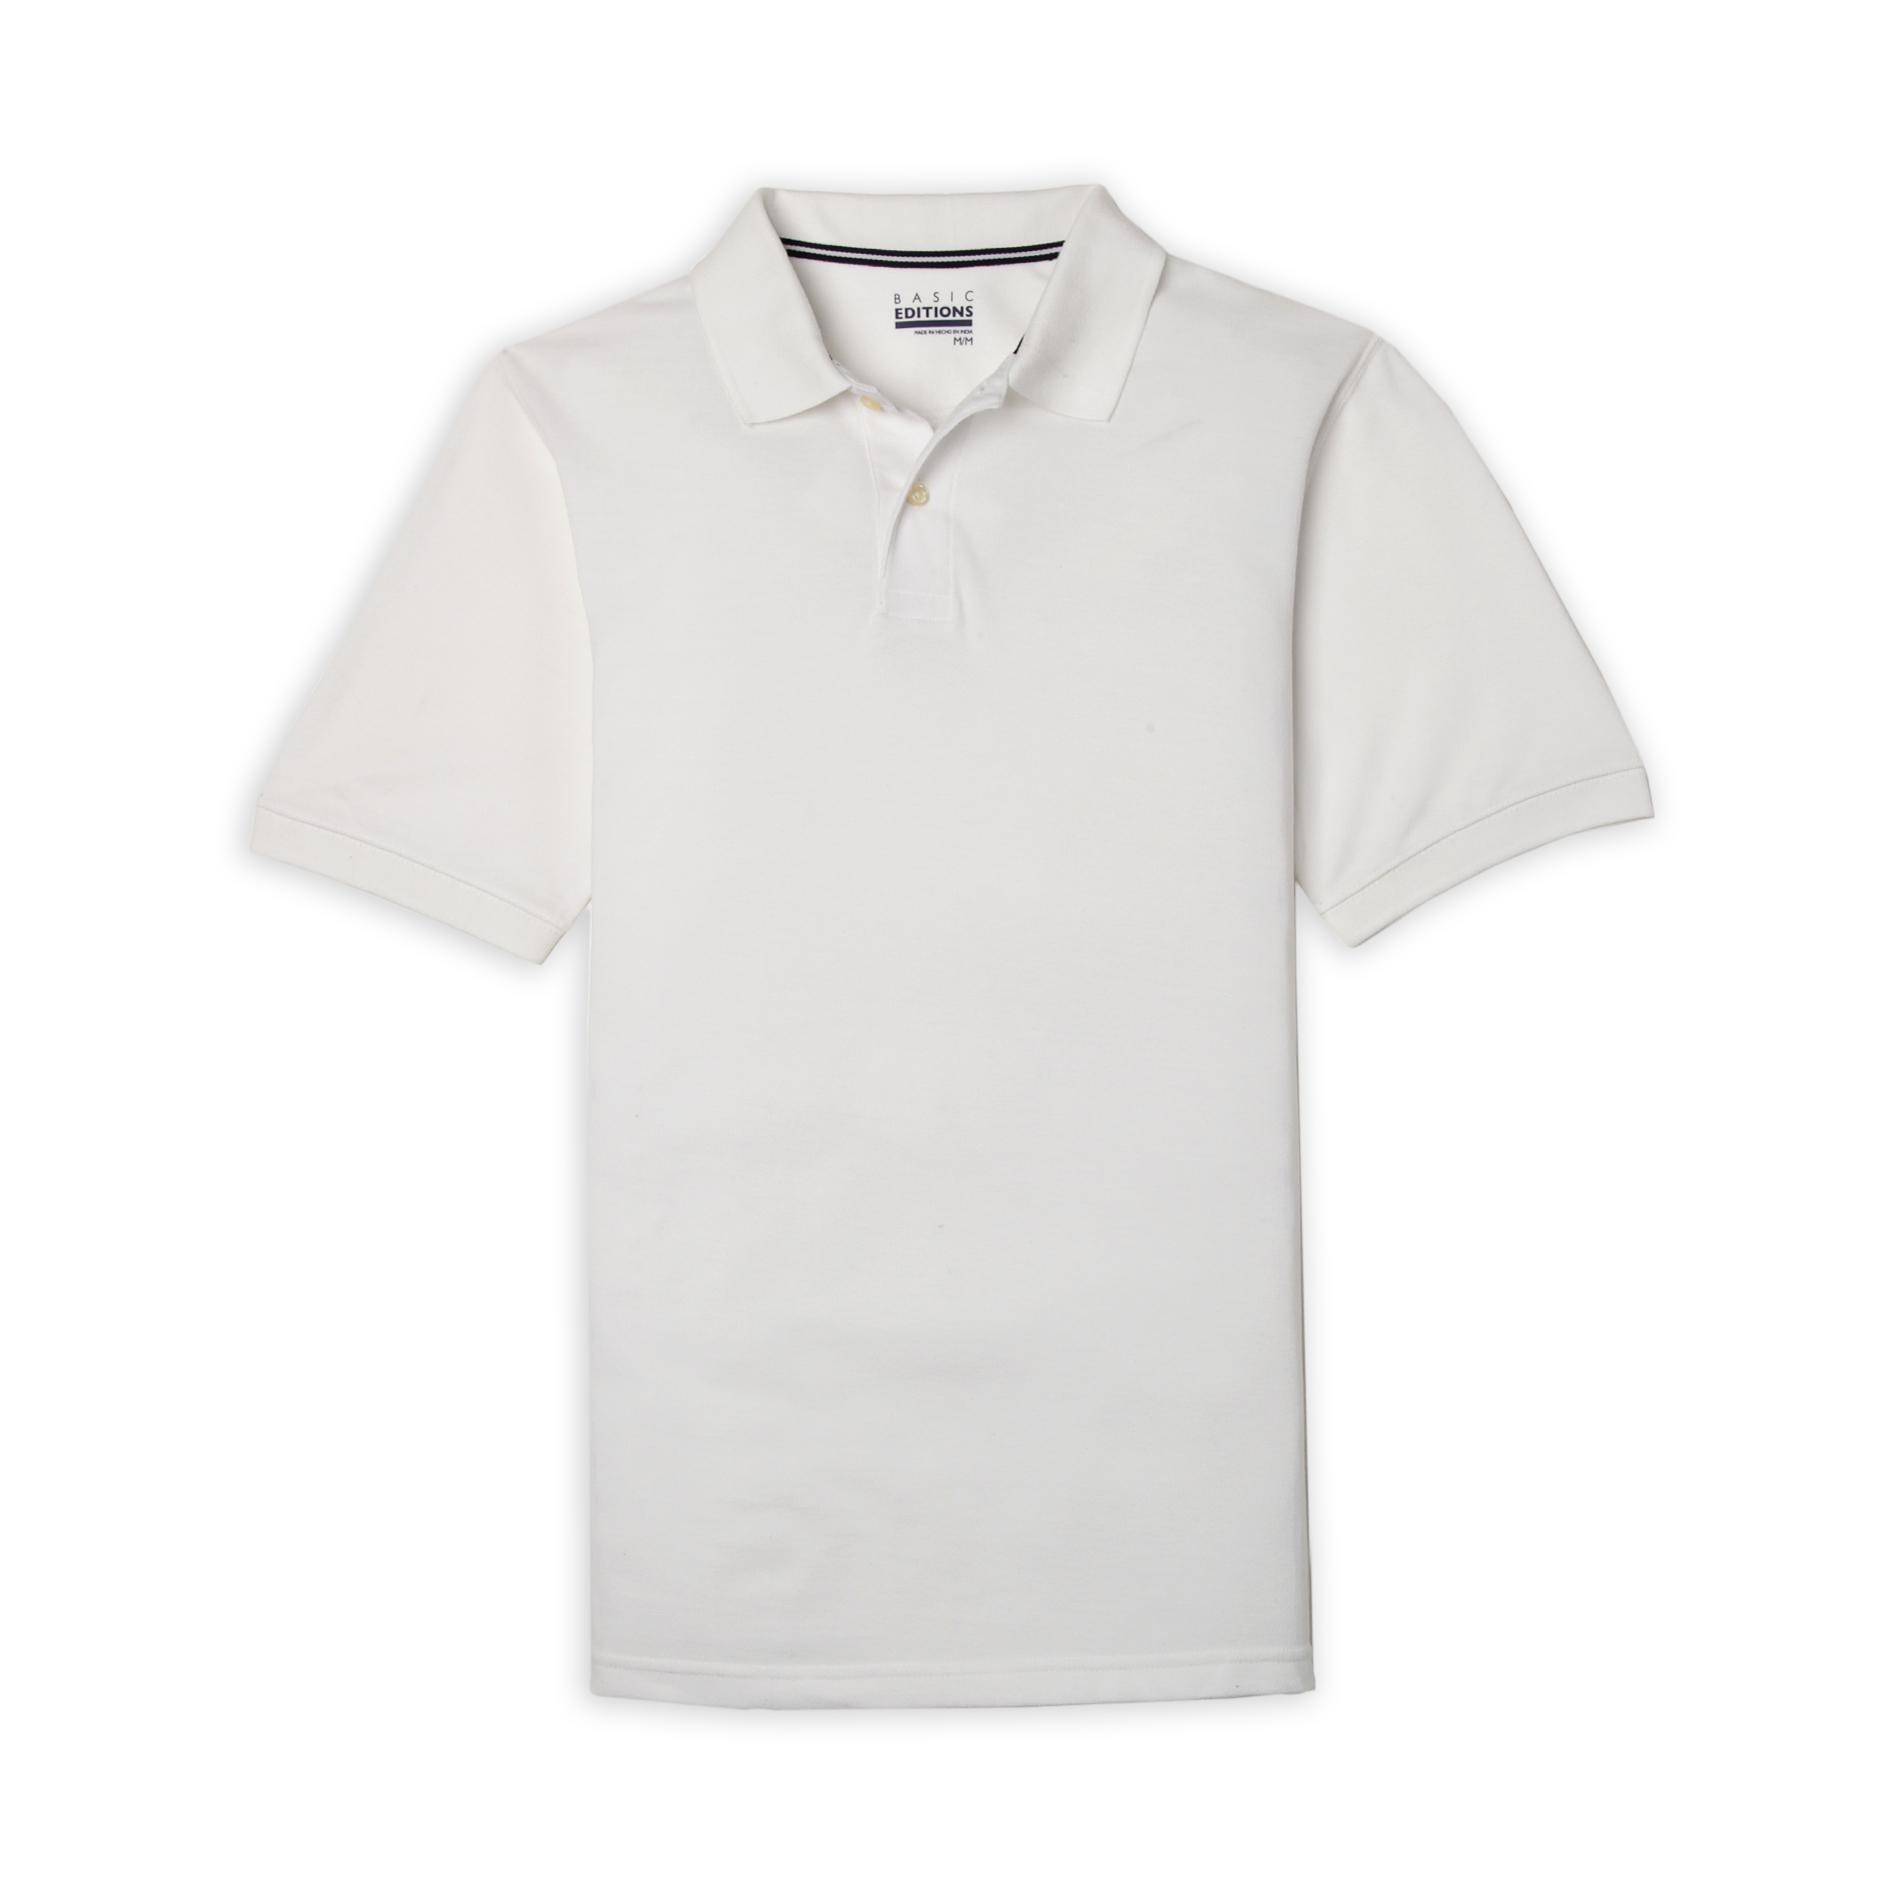 Basic Editions Men's Big & Tall Polo Shirt at Kmart.com